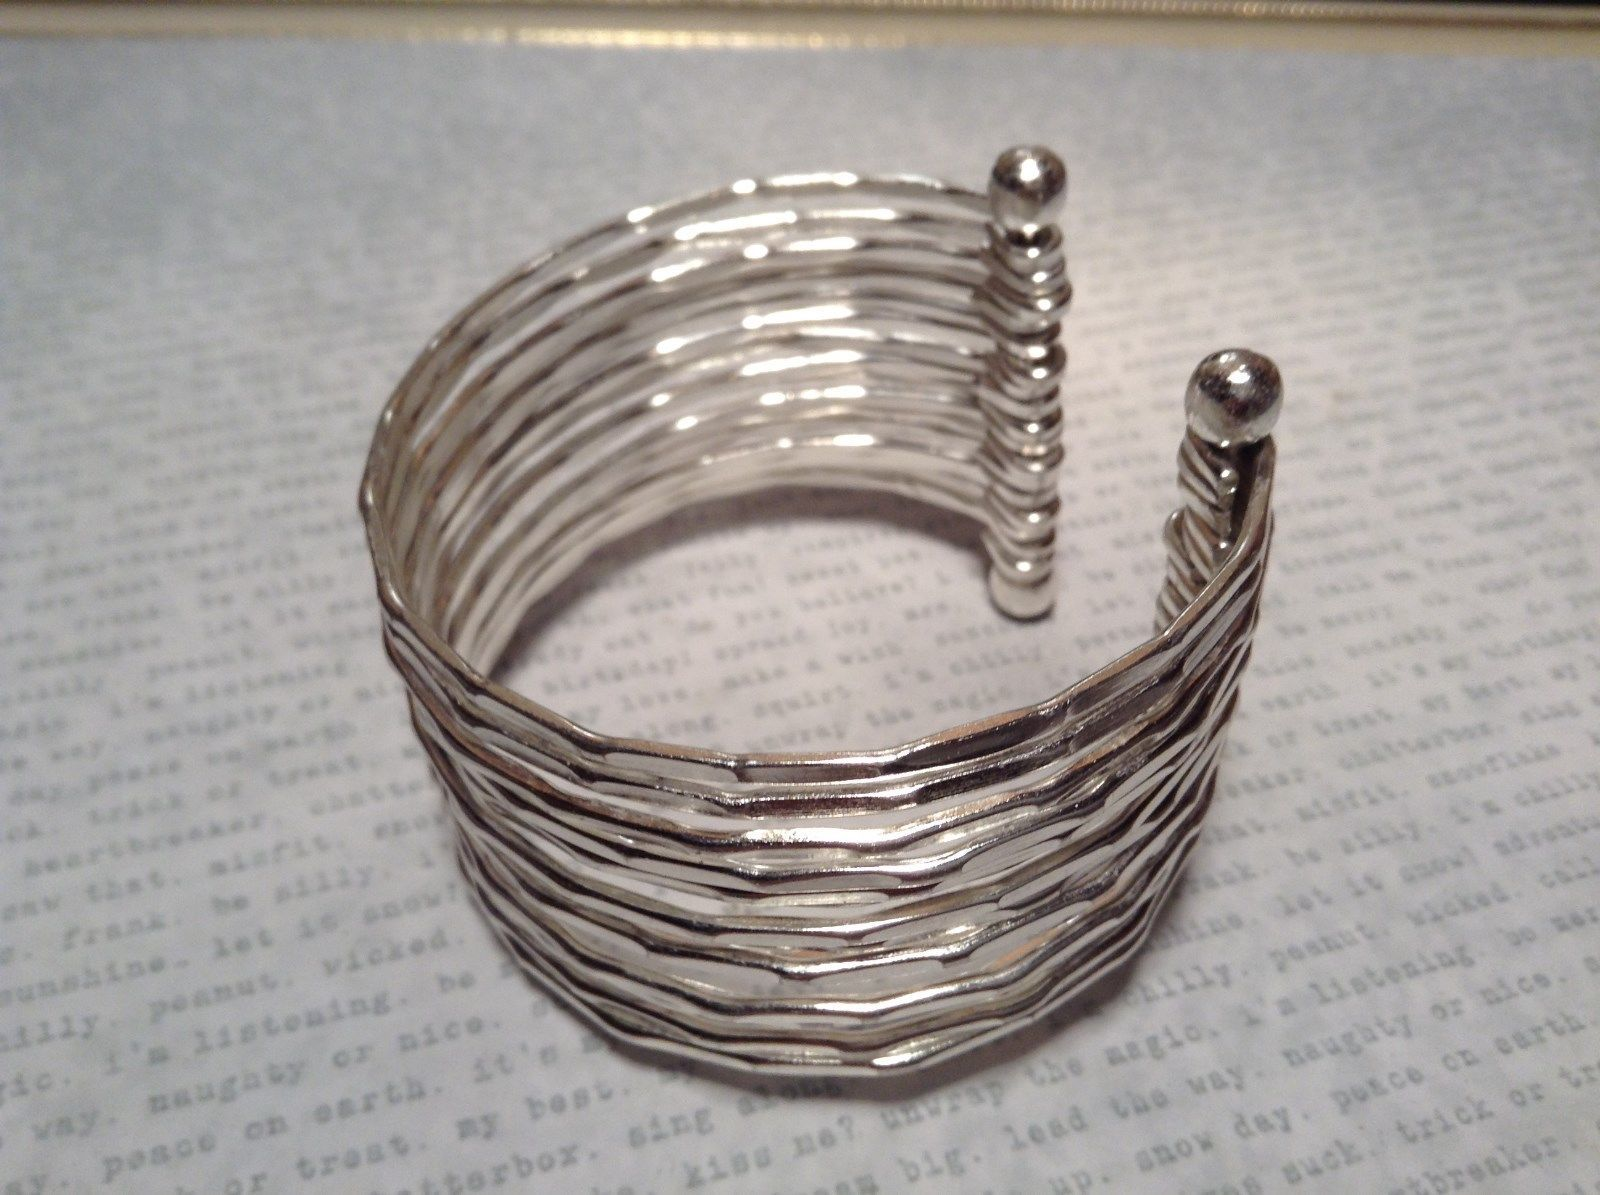 Concentric Handcrafted Silver Plated Multiband Cuff Bracelet 925 Sterling Silver